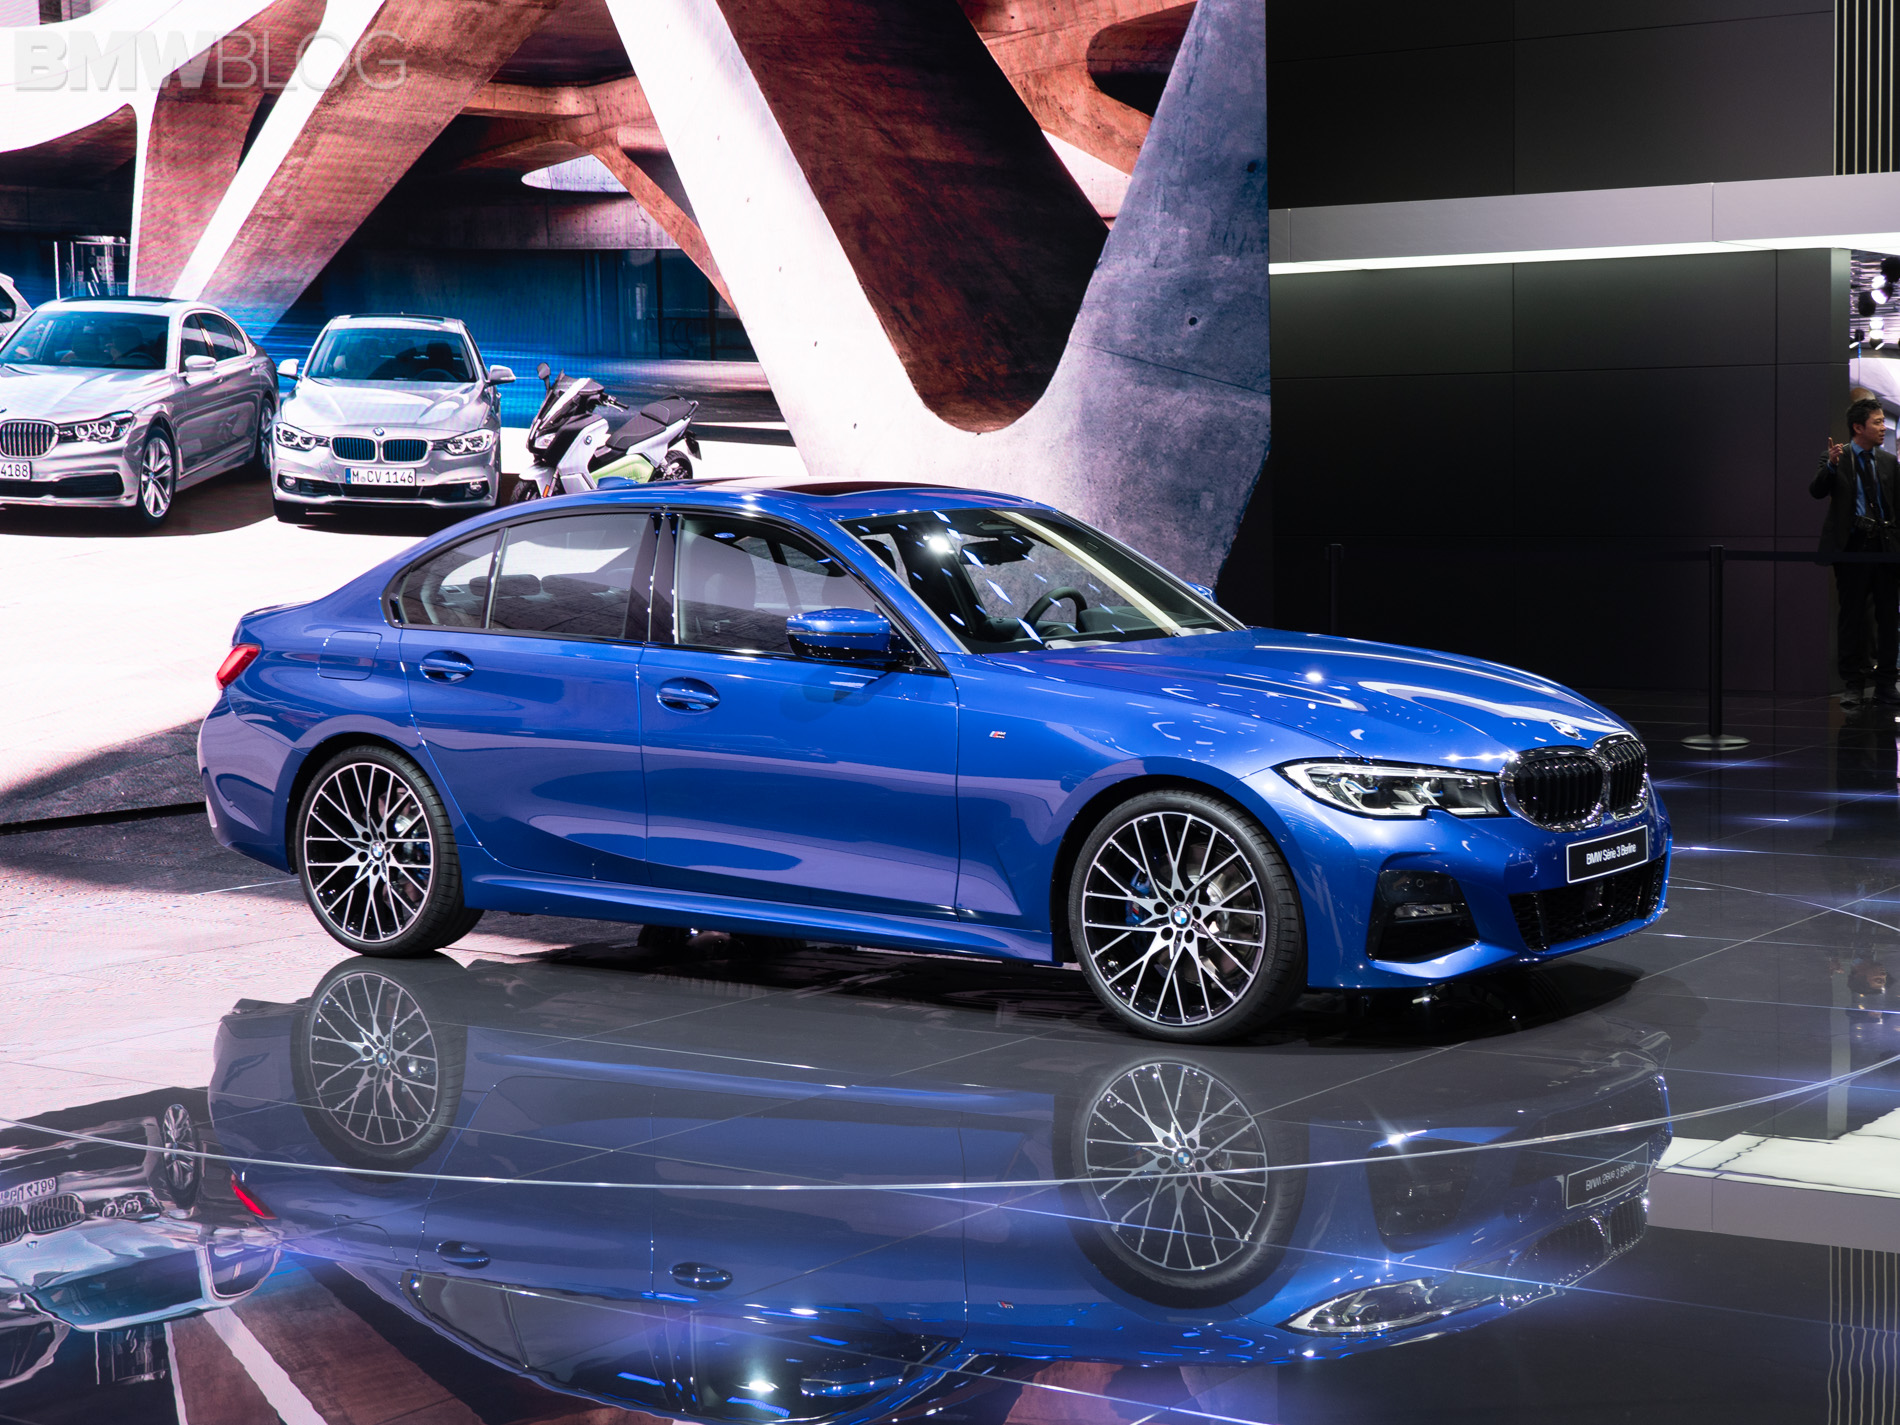 2019 BMW 3 Series exterior interior 5